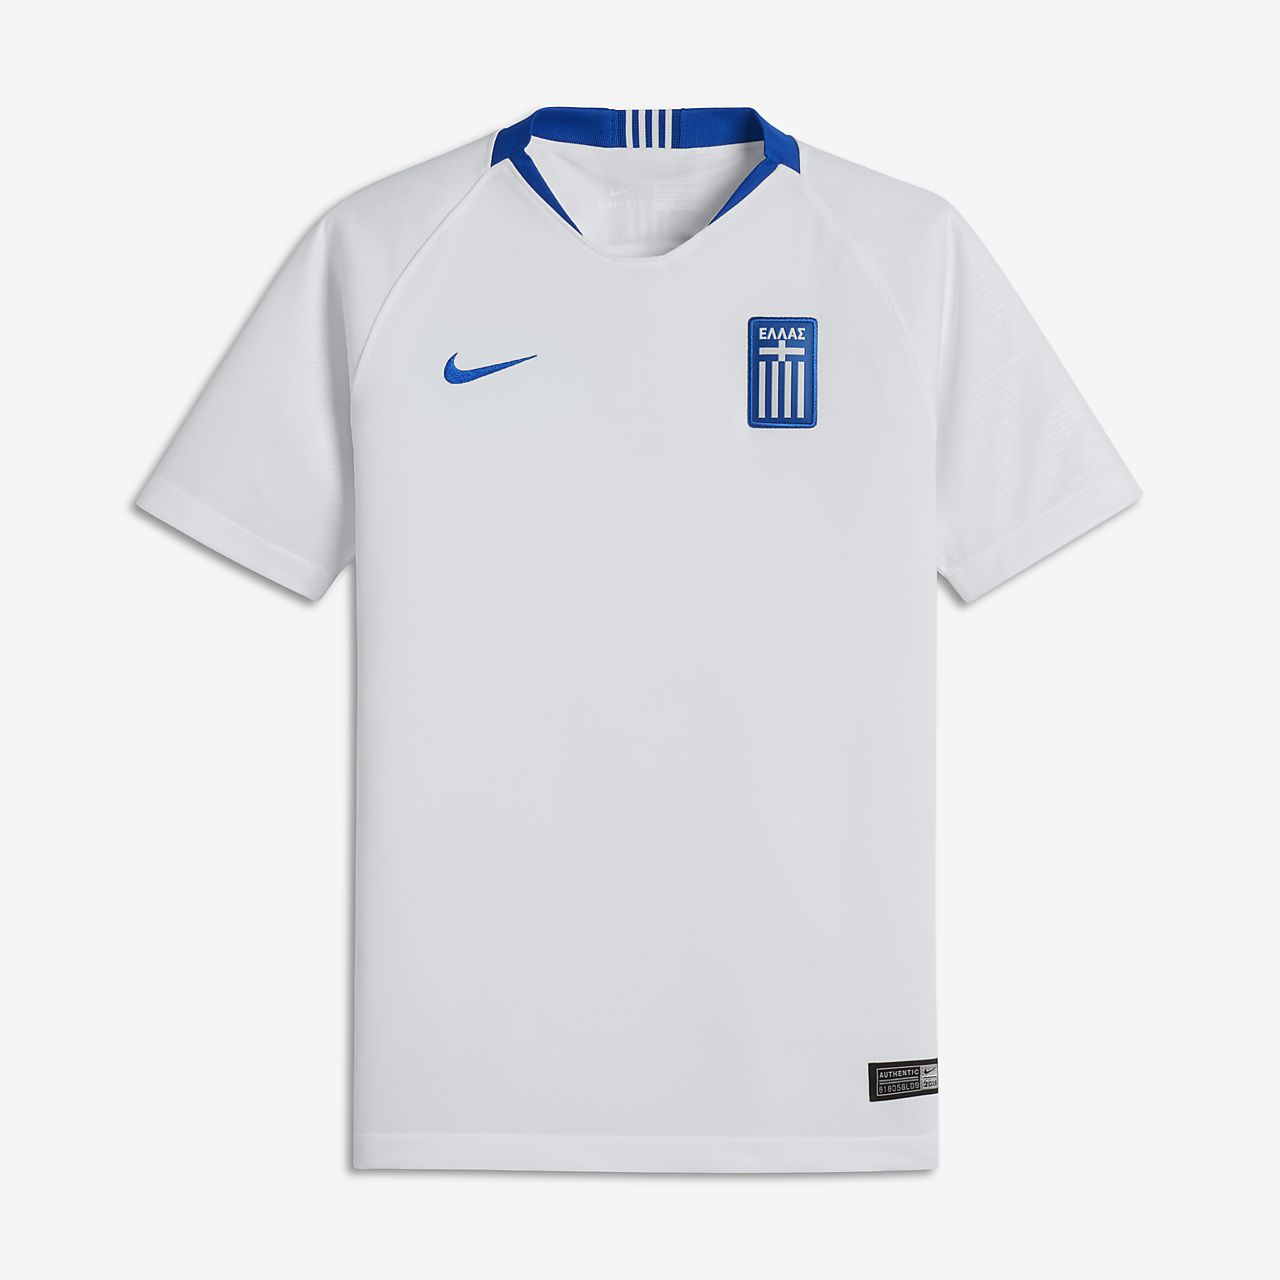 low price save off save up to 80% Maillot de football 2018 Greece Stadium Home pour Enfant plus âgé